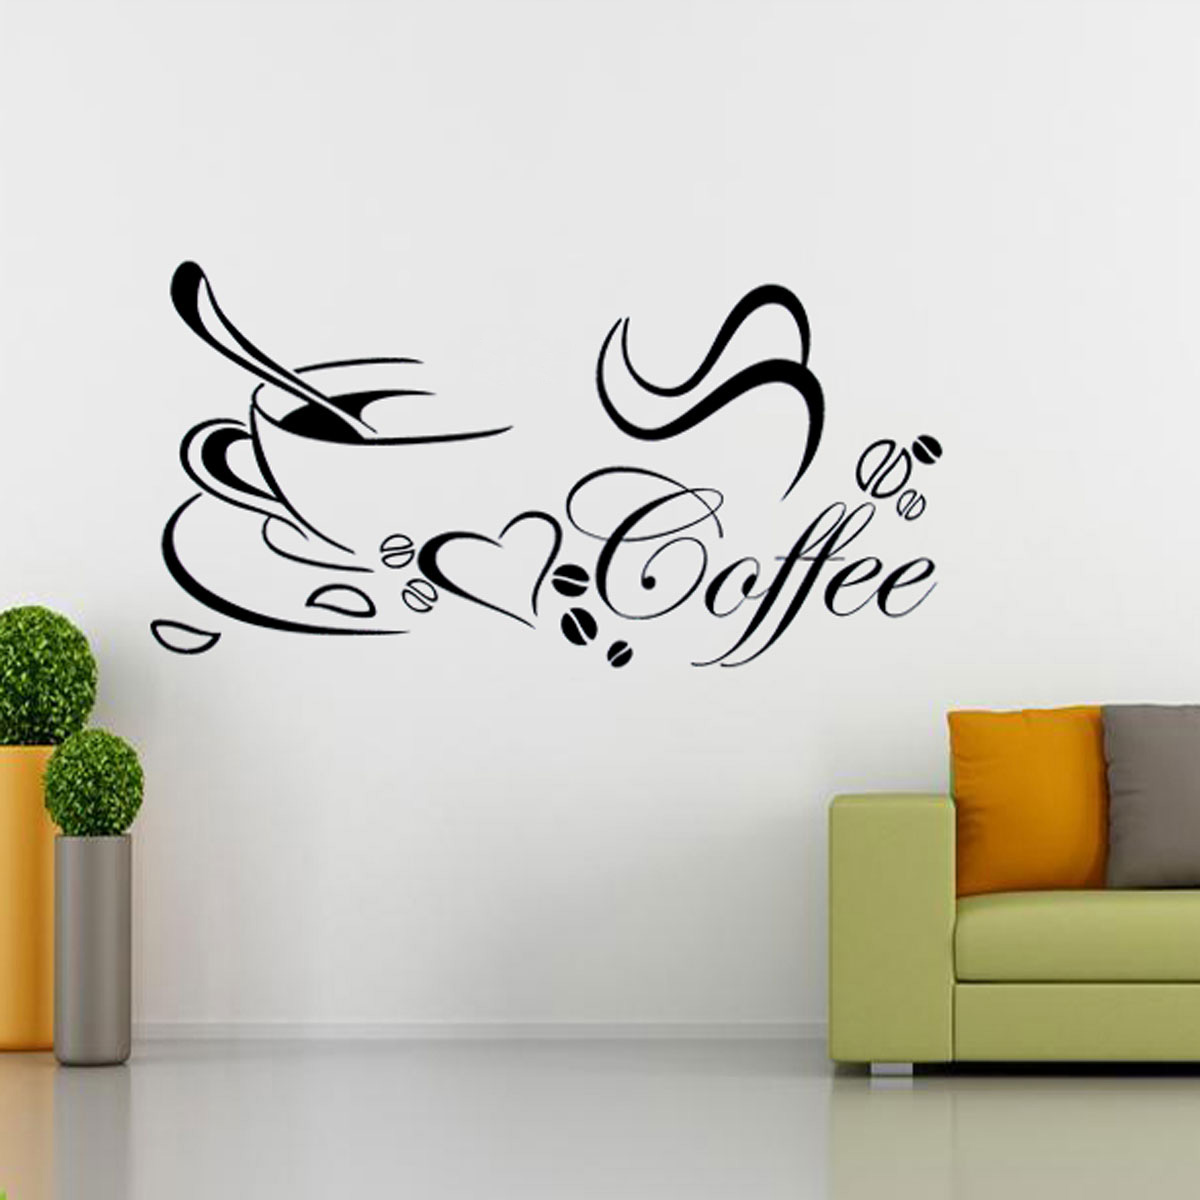 Diy removable coffee cup quote word decal vinyl home for Wall art decals